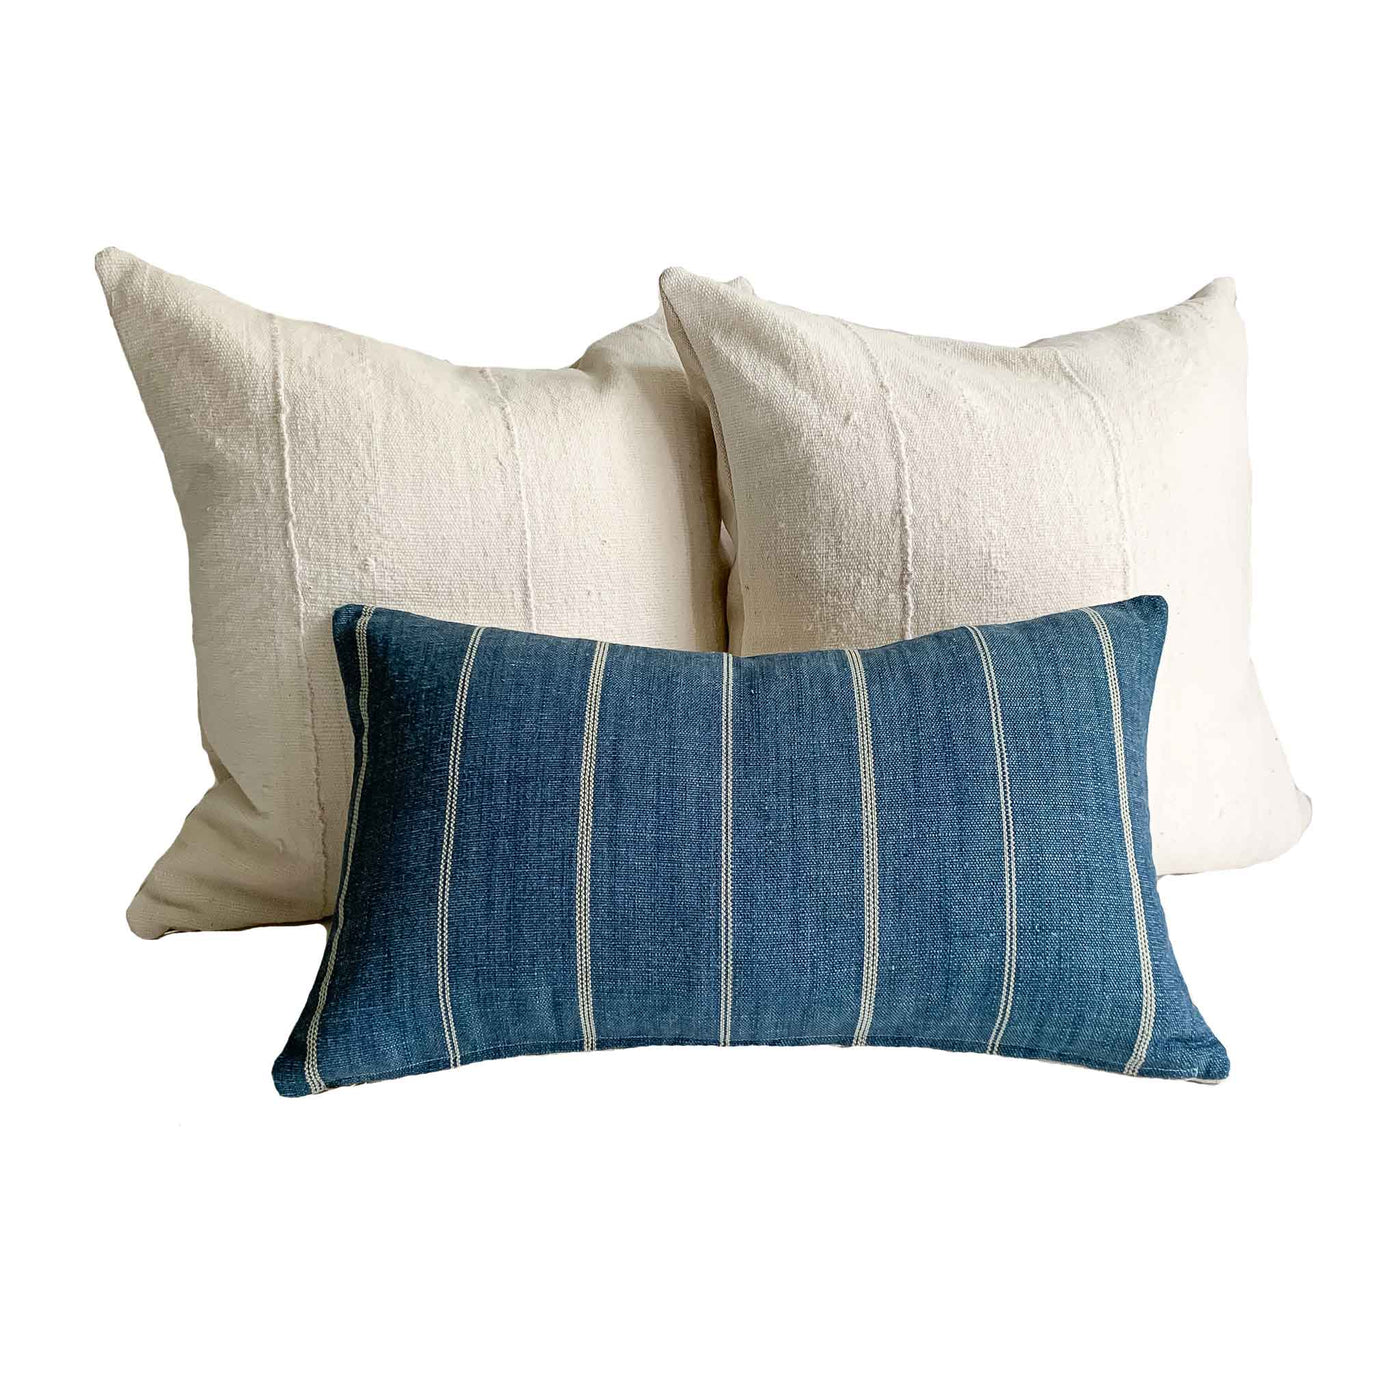 Studio Pillows | Pillow Combination #10 | Pillow Sofa Combination - Studio Pillows